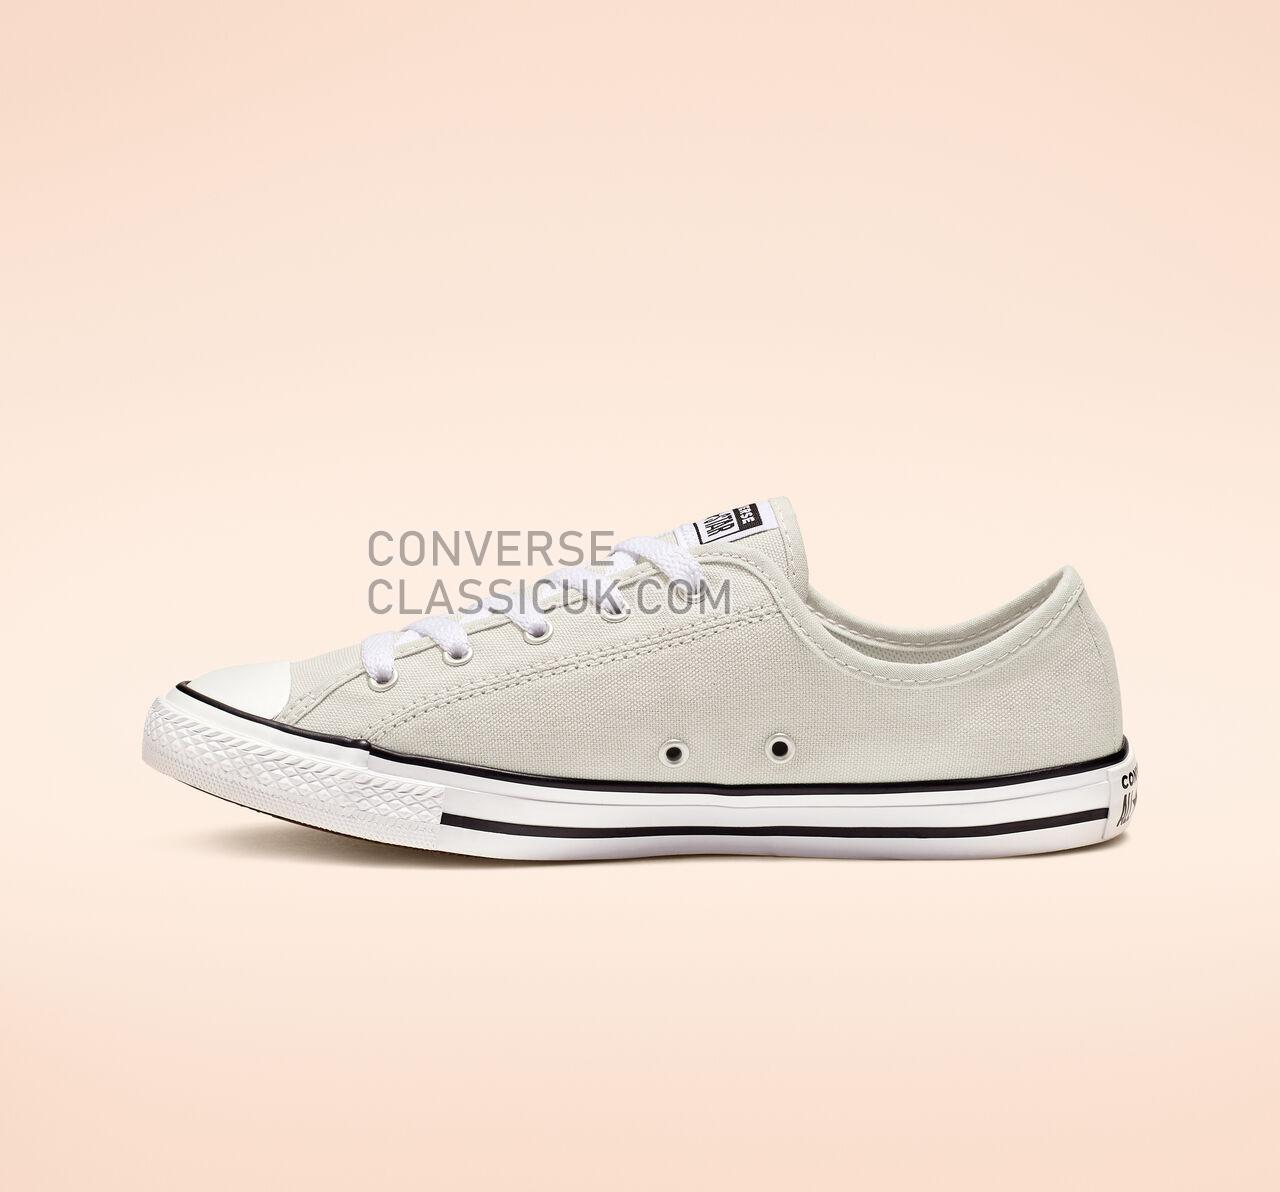 Converse Chuck Taylor All Star Dainty Low Top Womens 564983F Mouse/White/Black Shoes